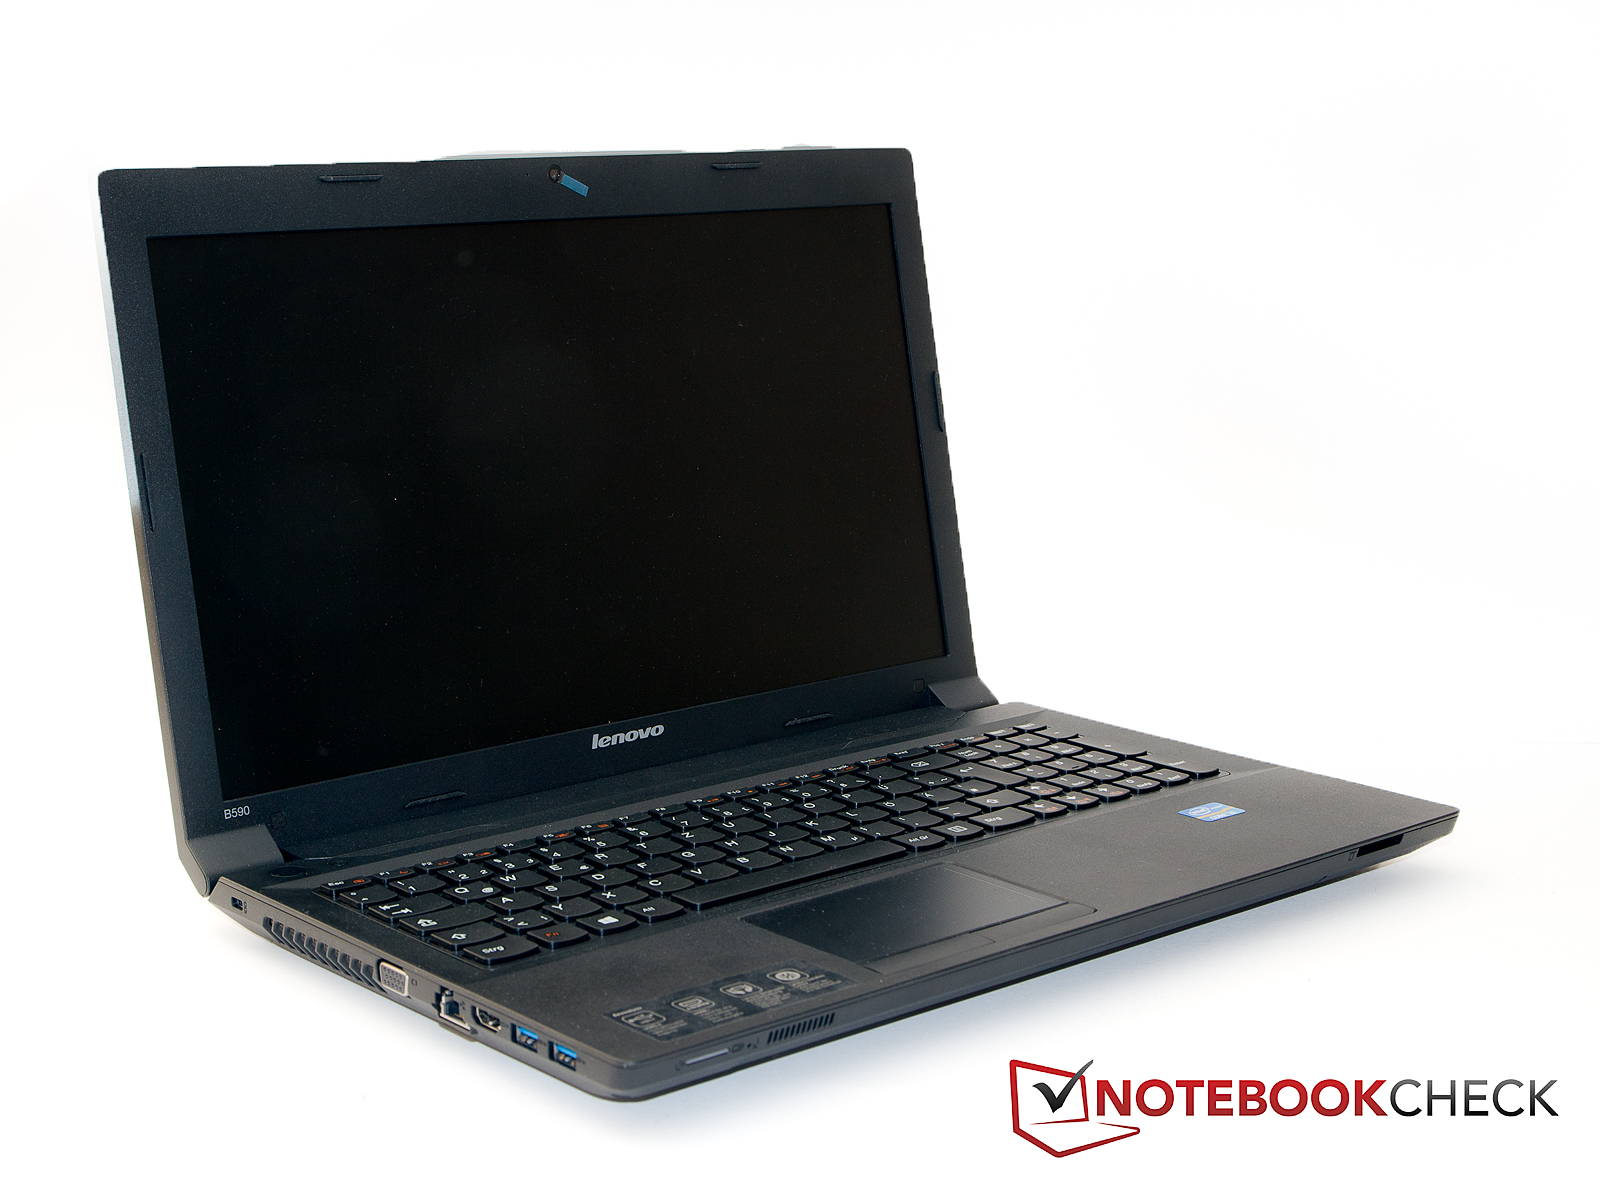 Business moreover Pulseira Da Pandora Mercadolivre Pandora in addition 63 also Review Lenovo B590 MBX2JGE Notebook 88518 0 in addition Default. on pressure cleaning